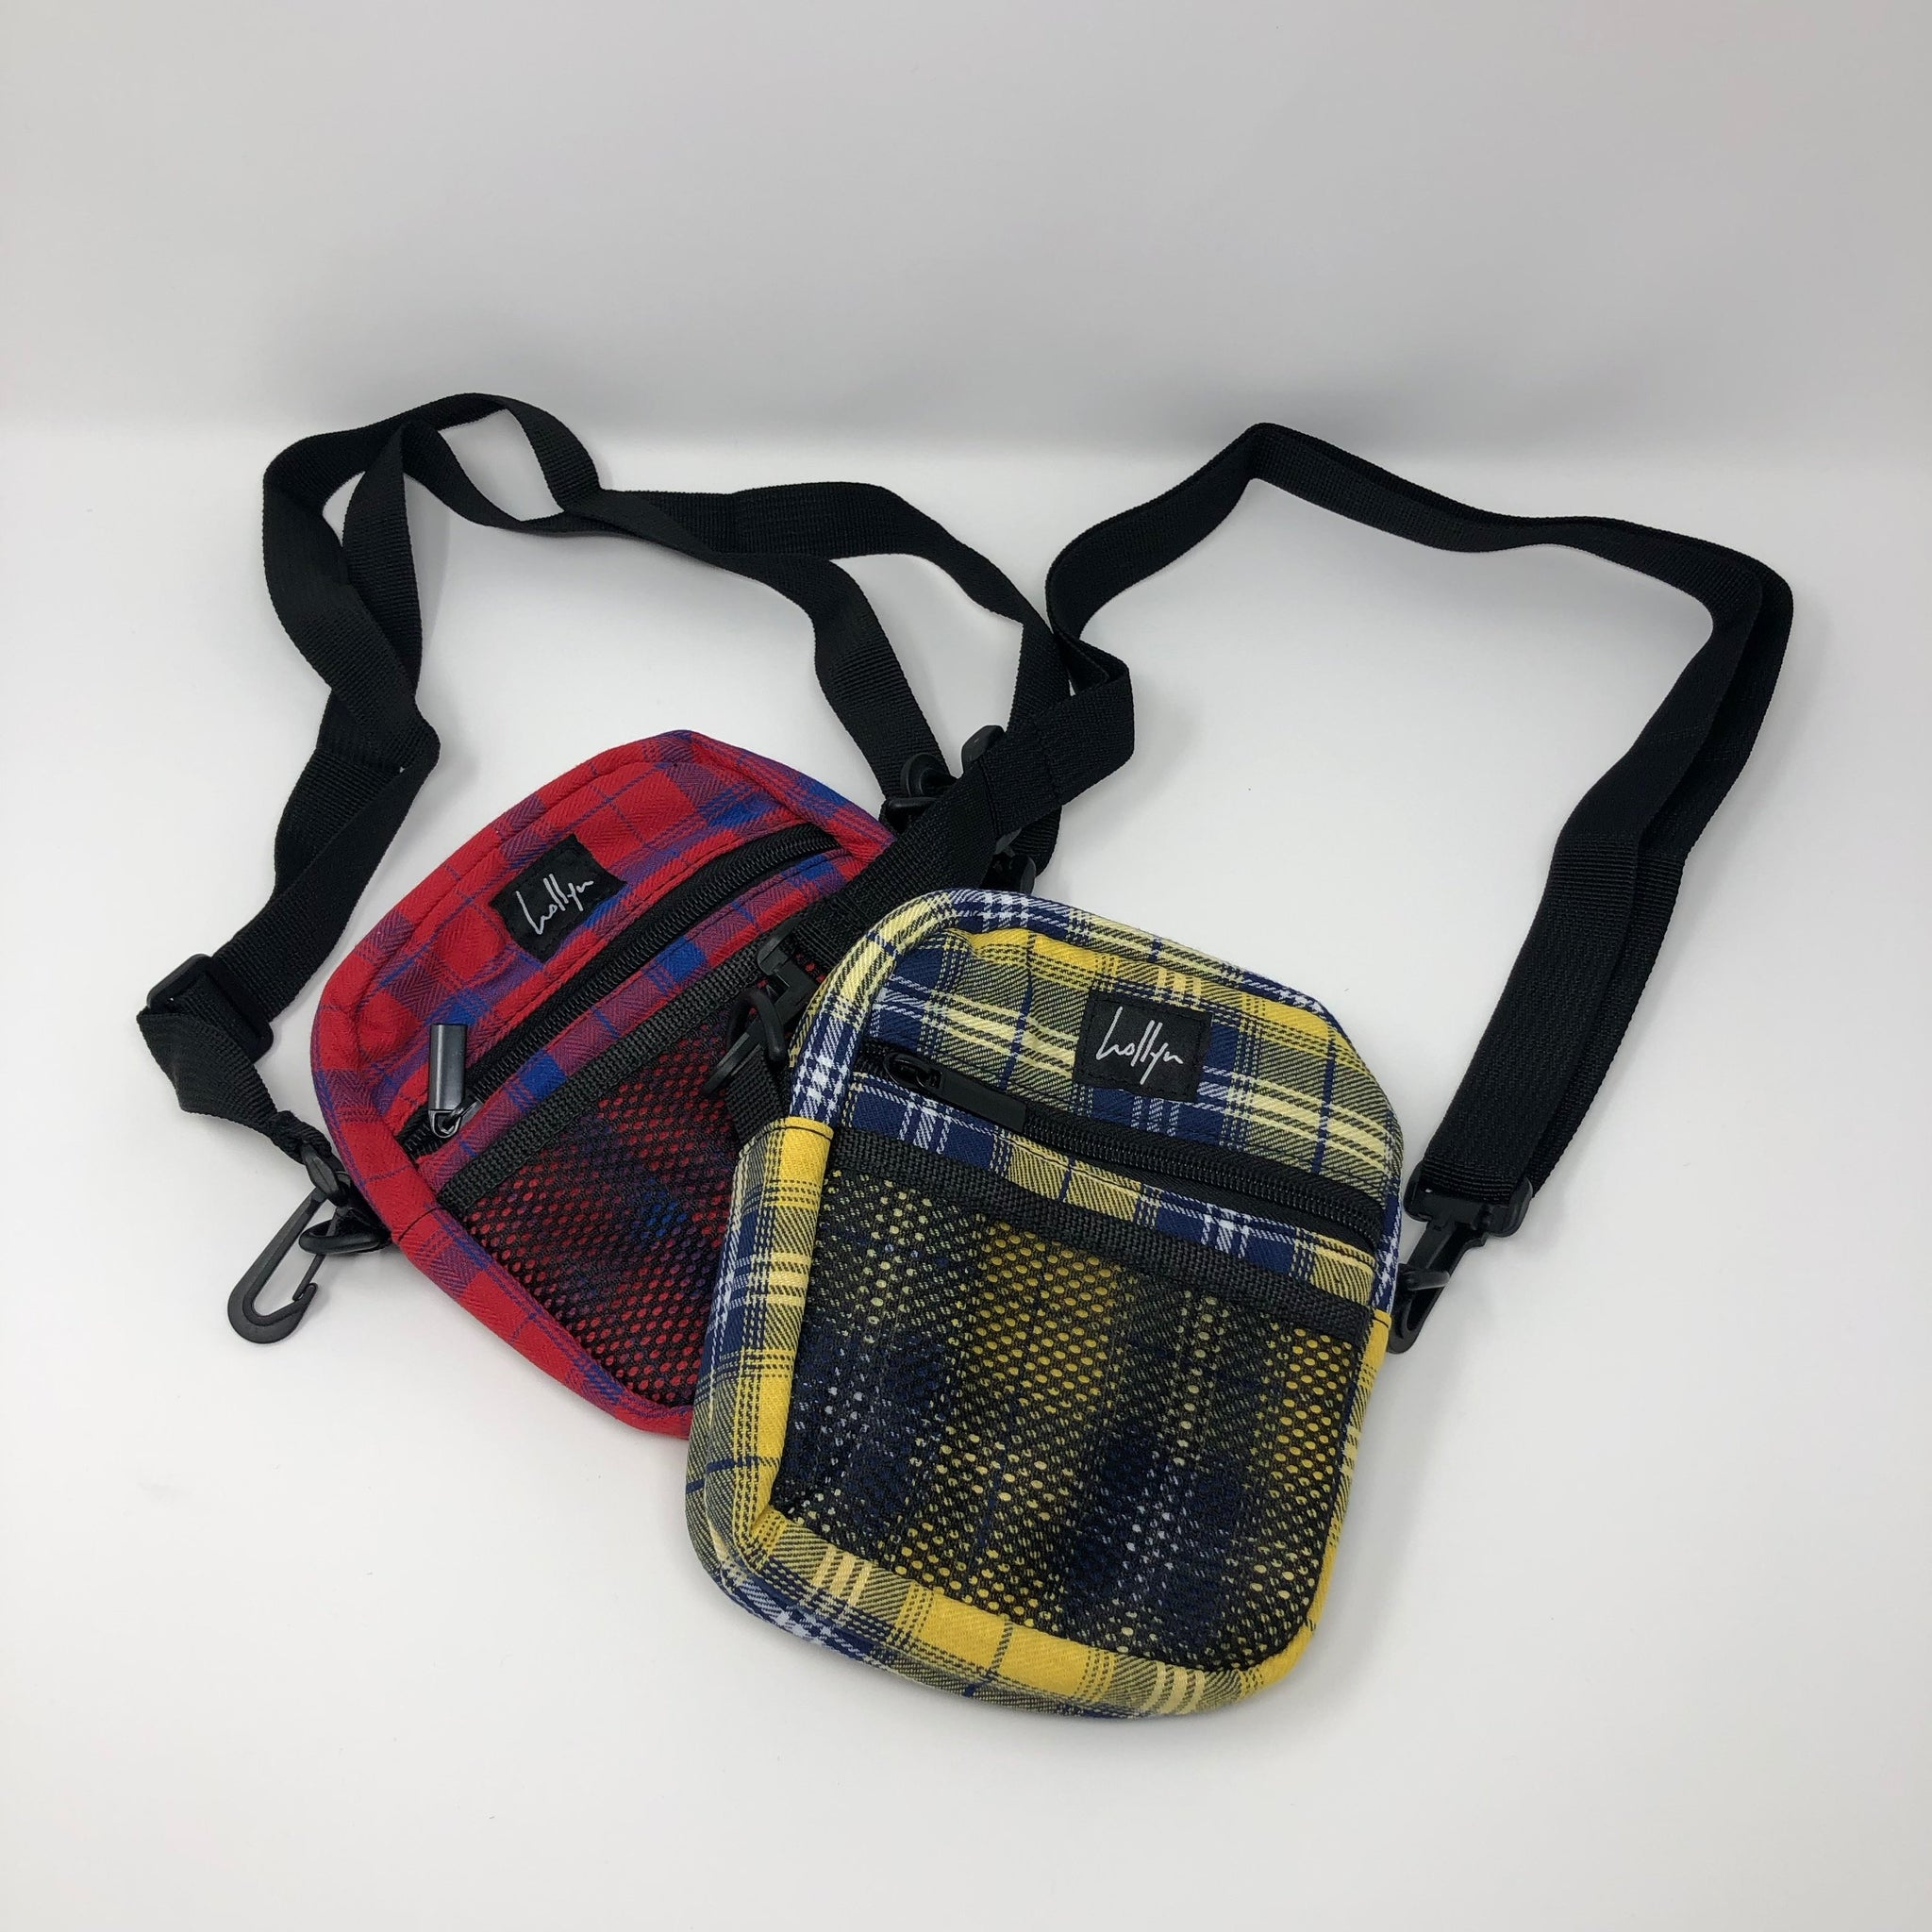 Hollyn Plaid Bag